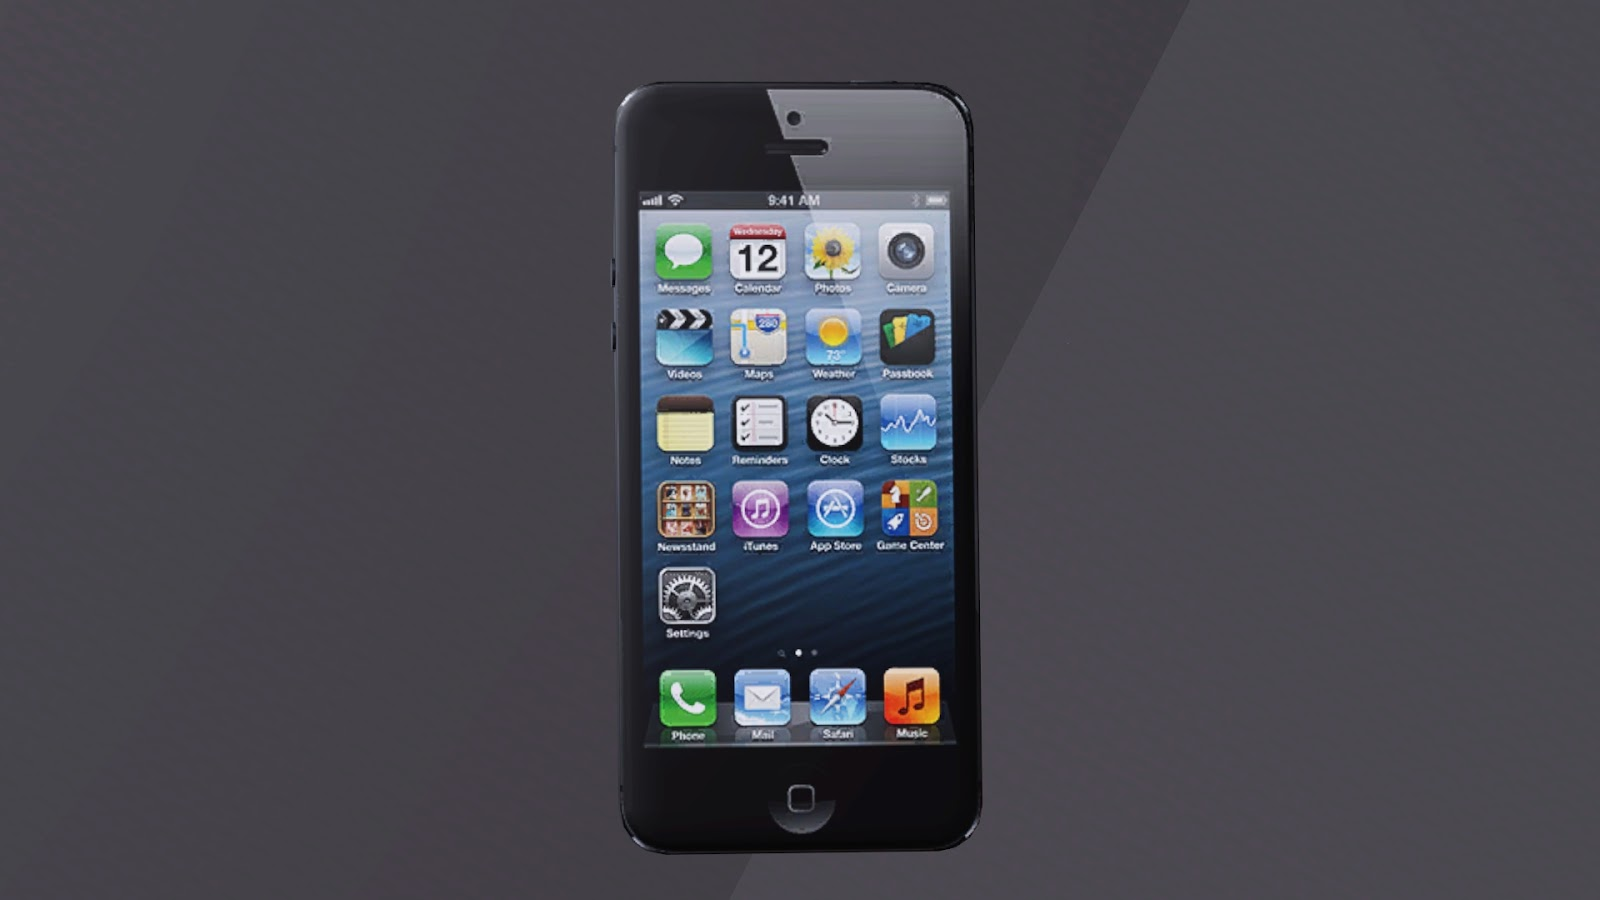 iphone 5 the sims 3 download